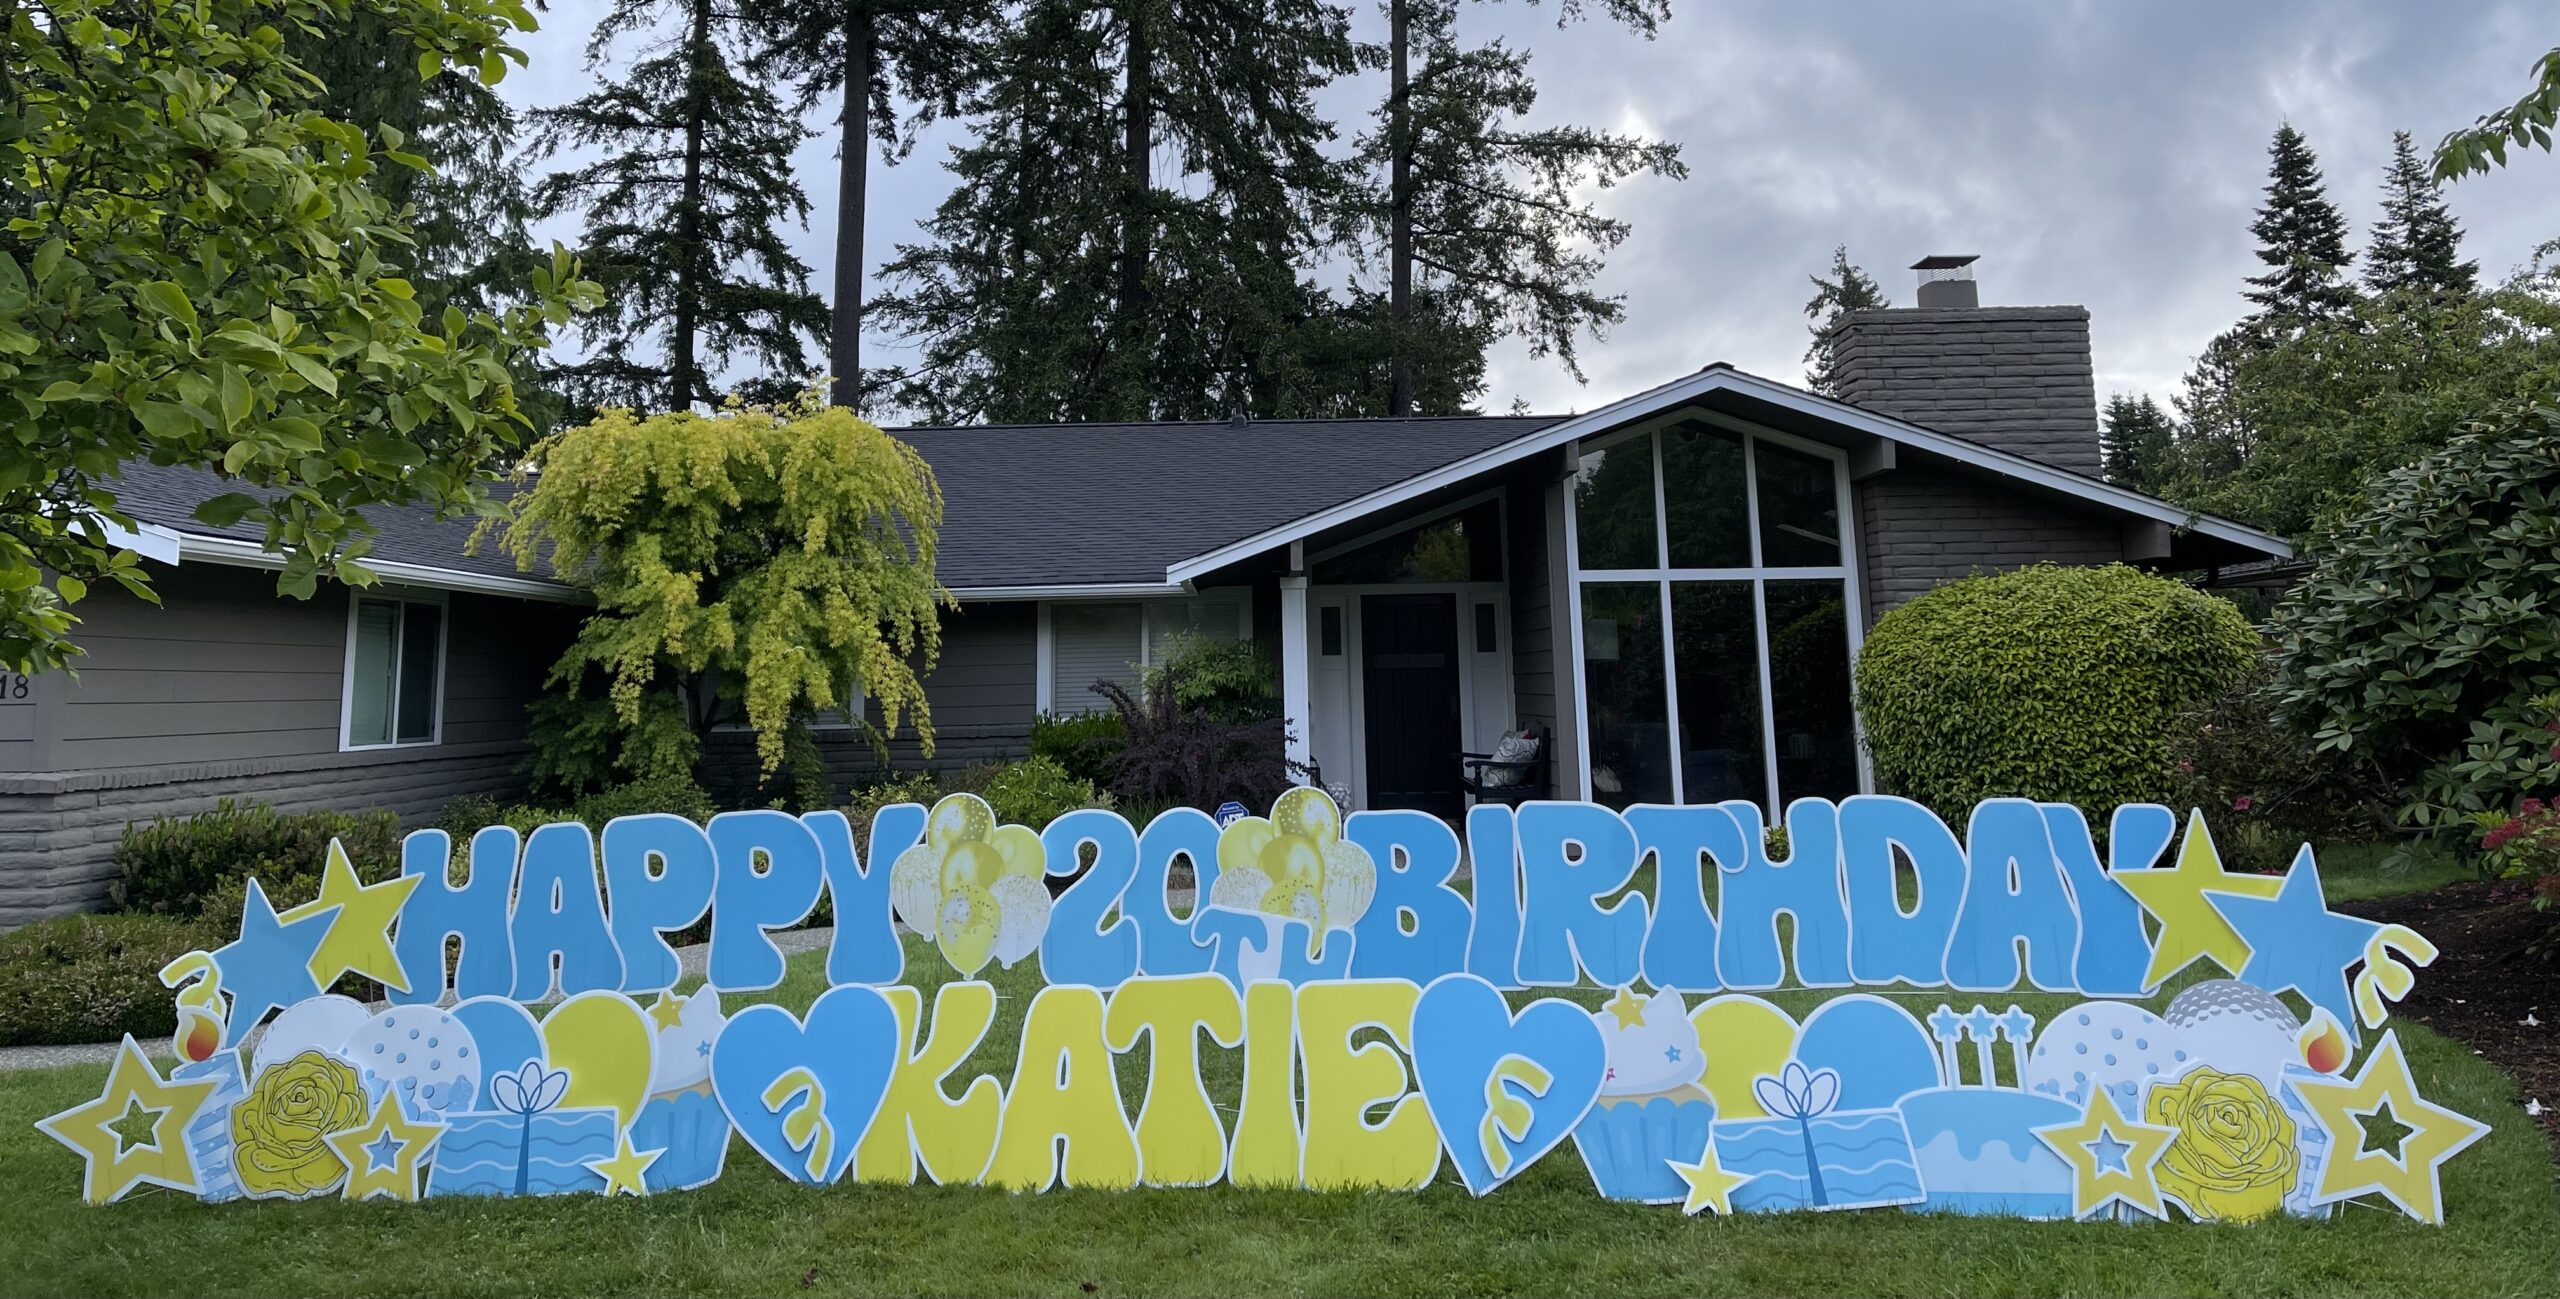 Yard Announcements Loves to help you Party with our Super Fun Birthday Yard Signs in Washington State!